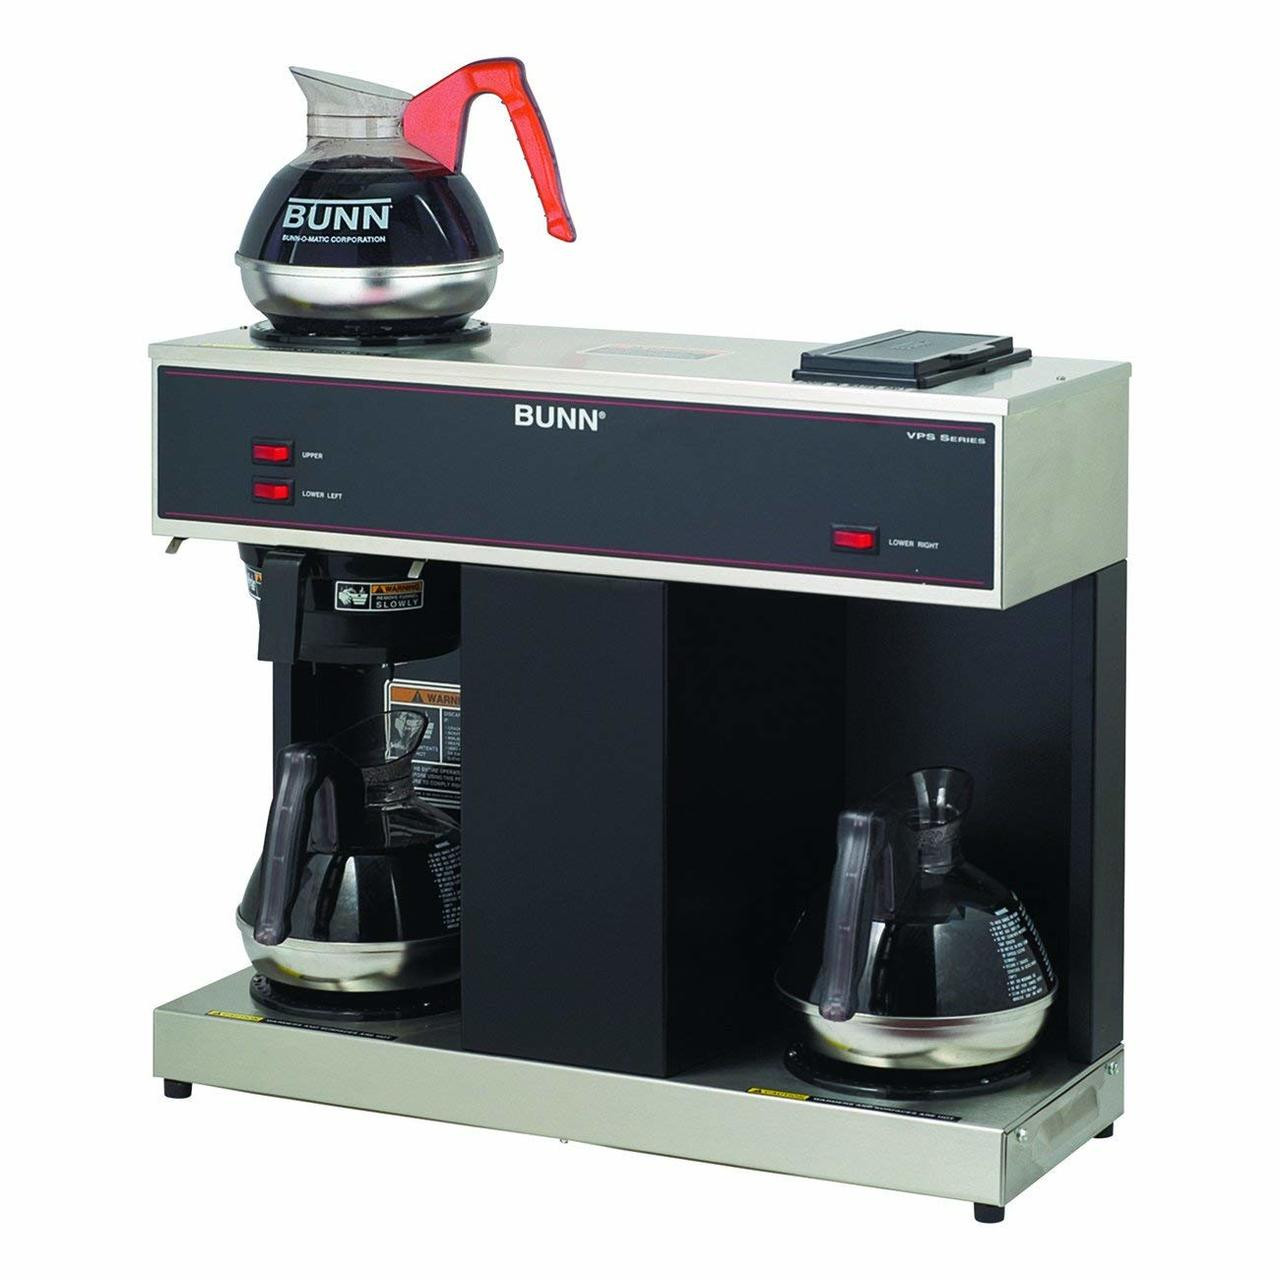 Bunn 3 Station VPS Commercial Coffee Brewer